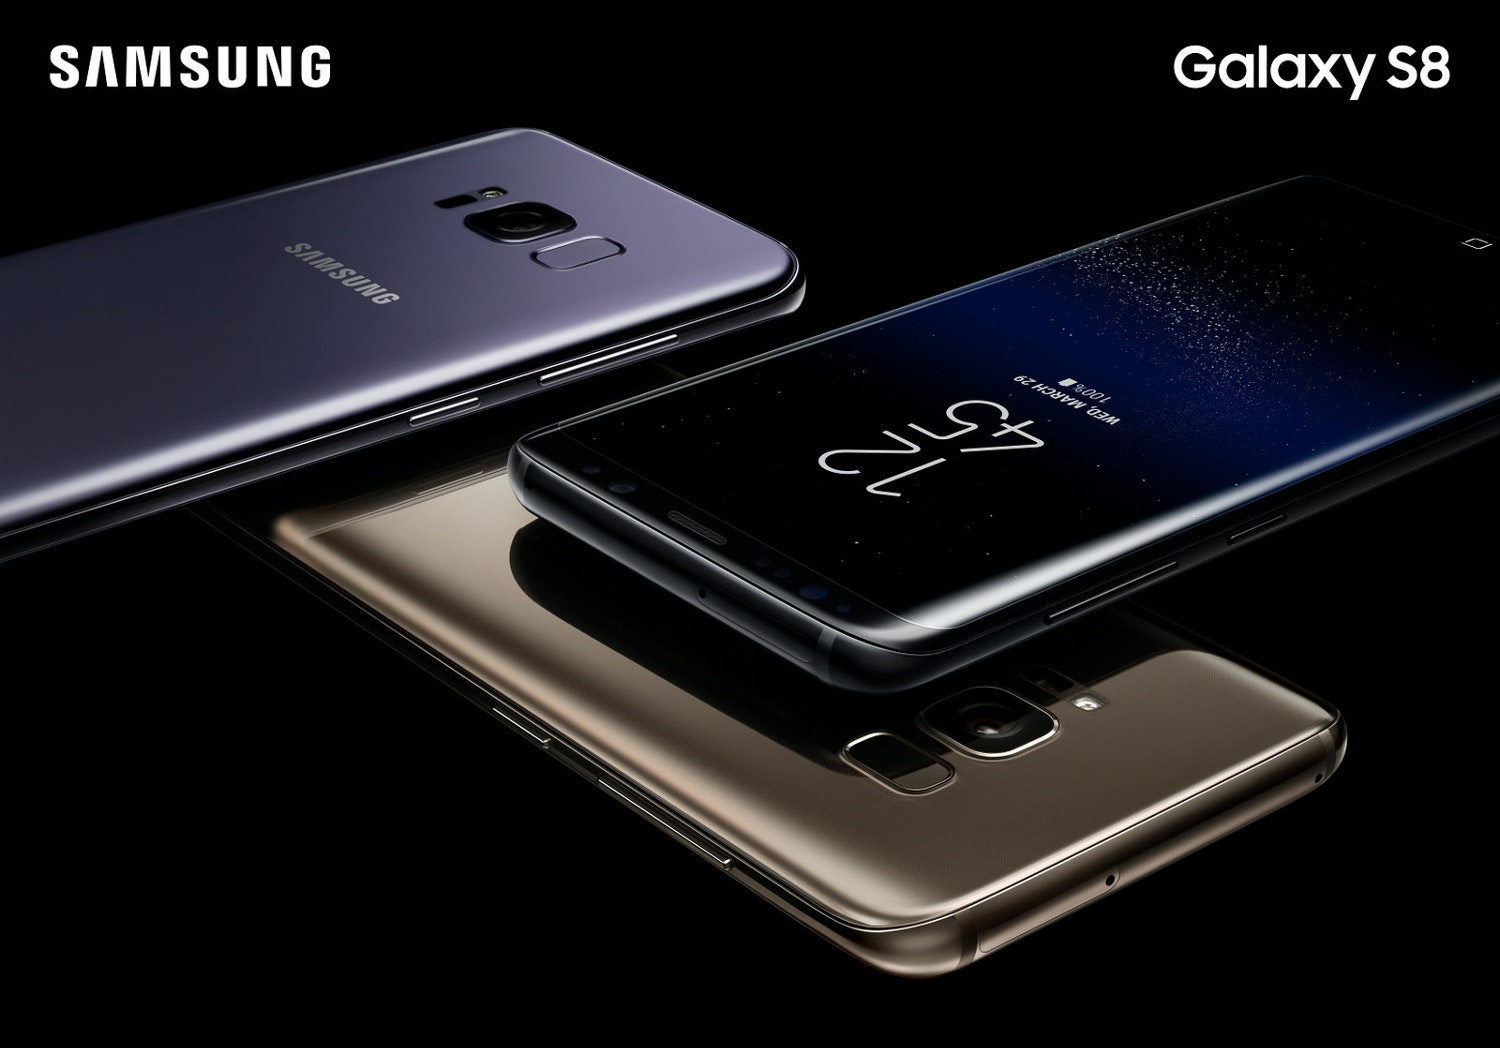 Samsung Galaxy S8 & S8 Plus—What's New?